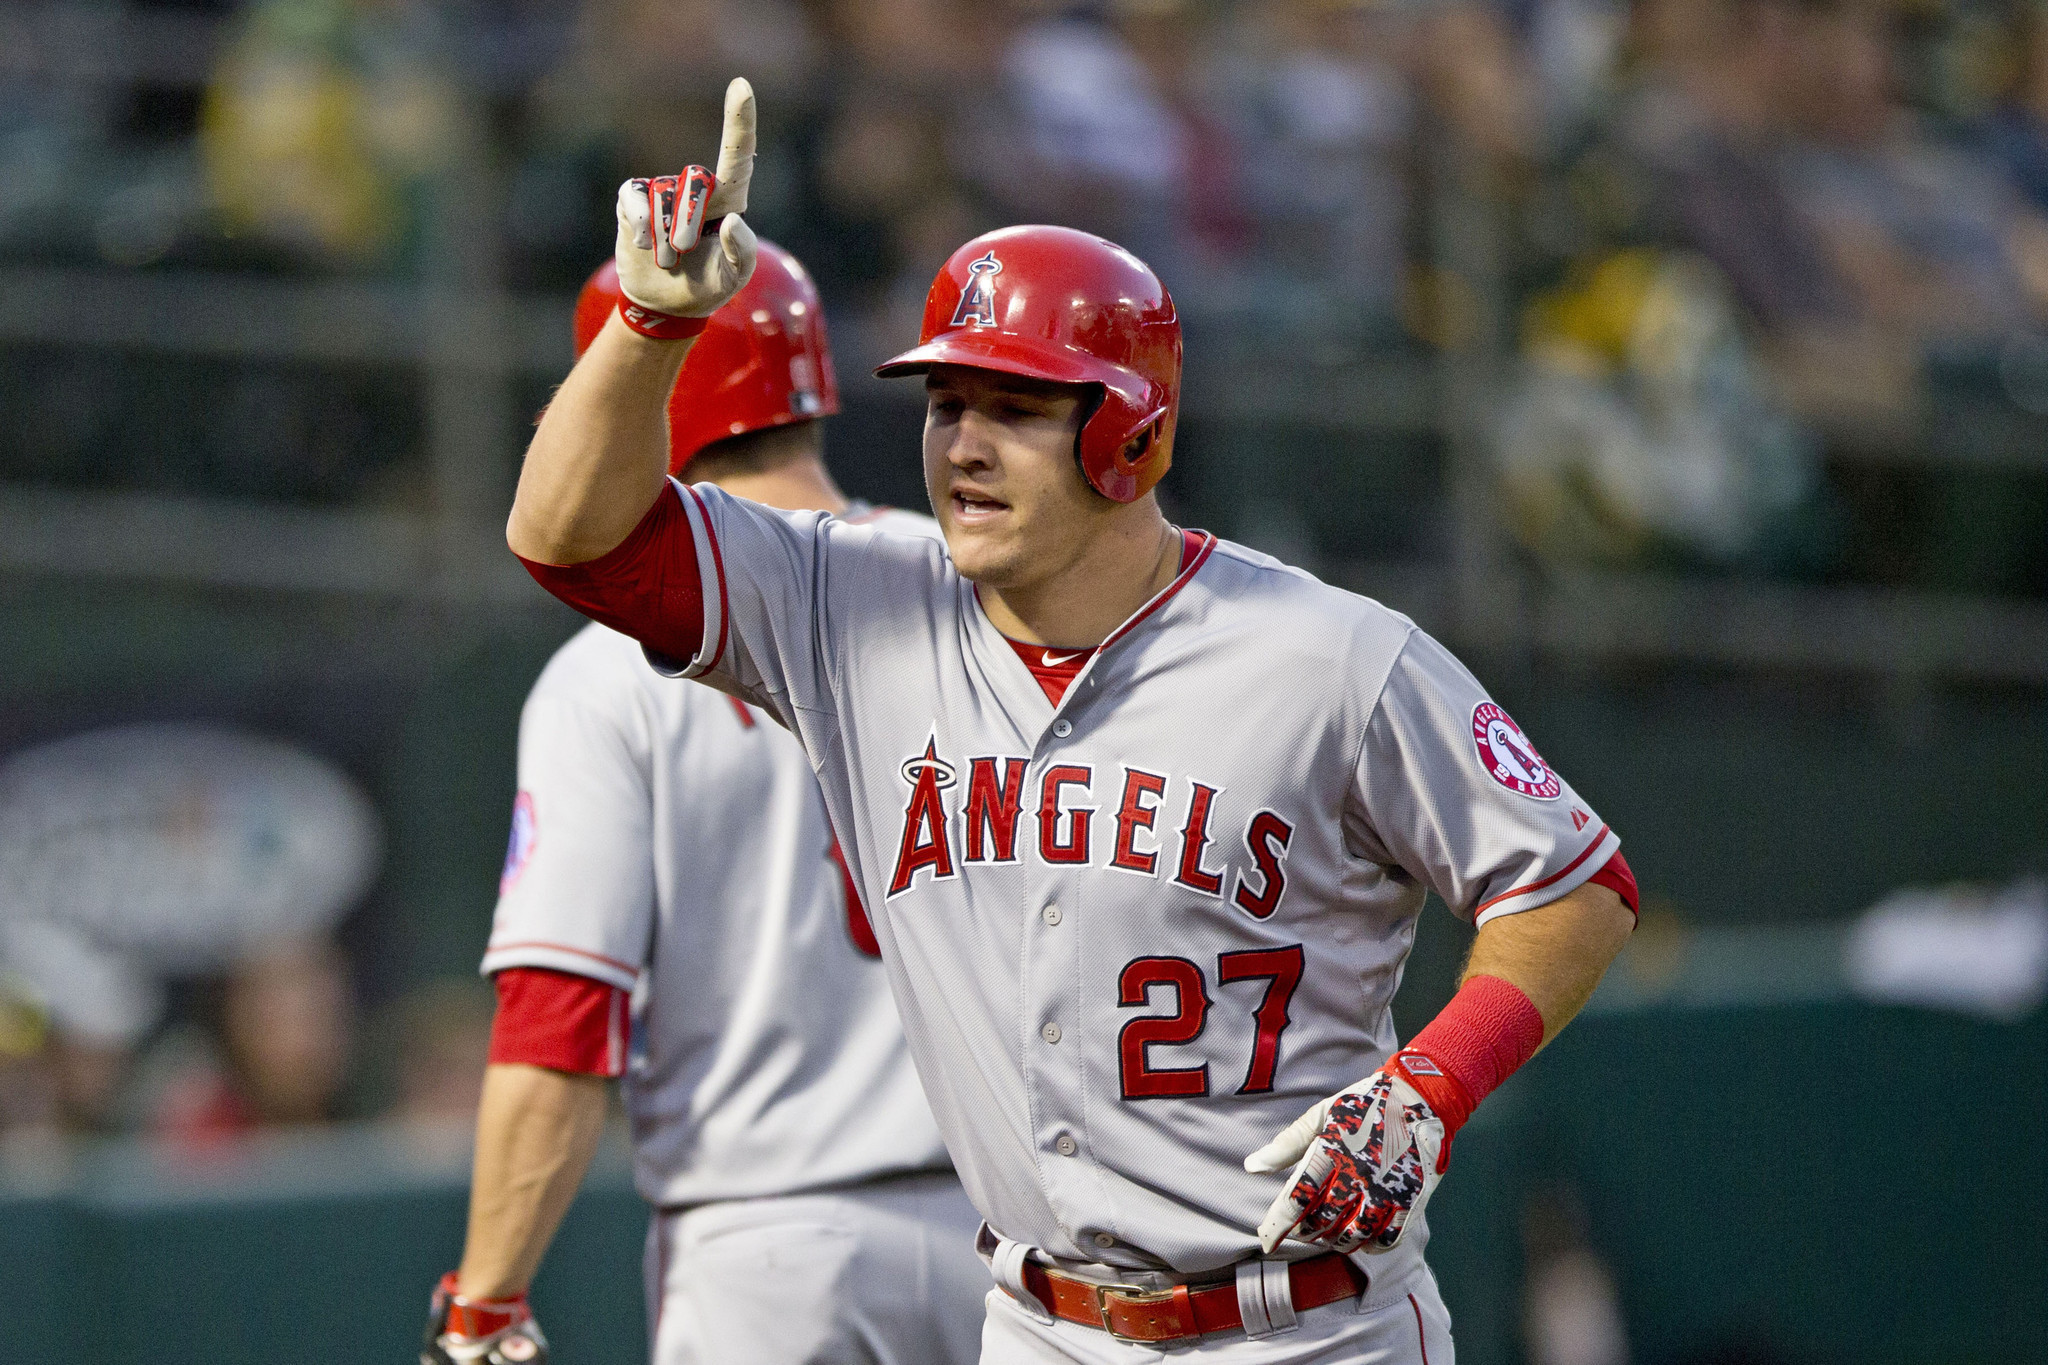 Mike Trout homers in Angels' 6-3 win over Athletics - LA Times